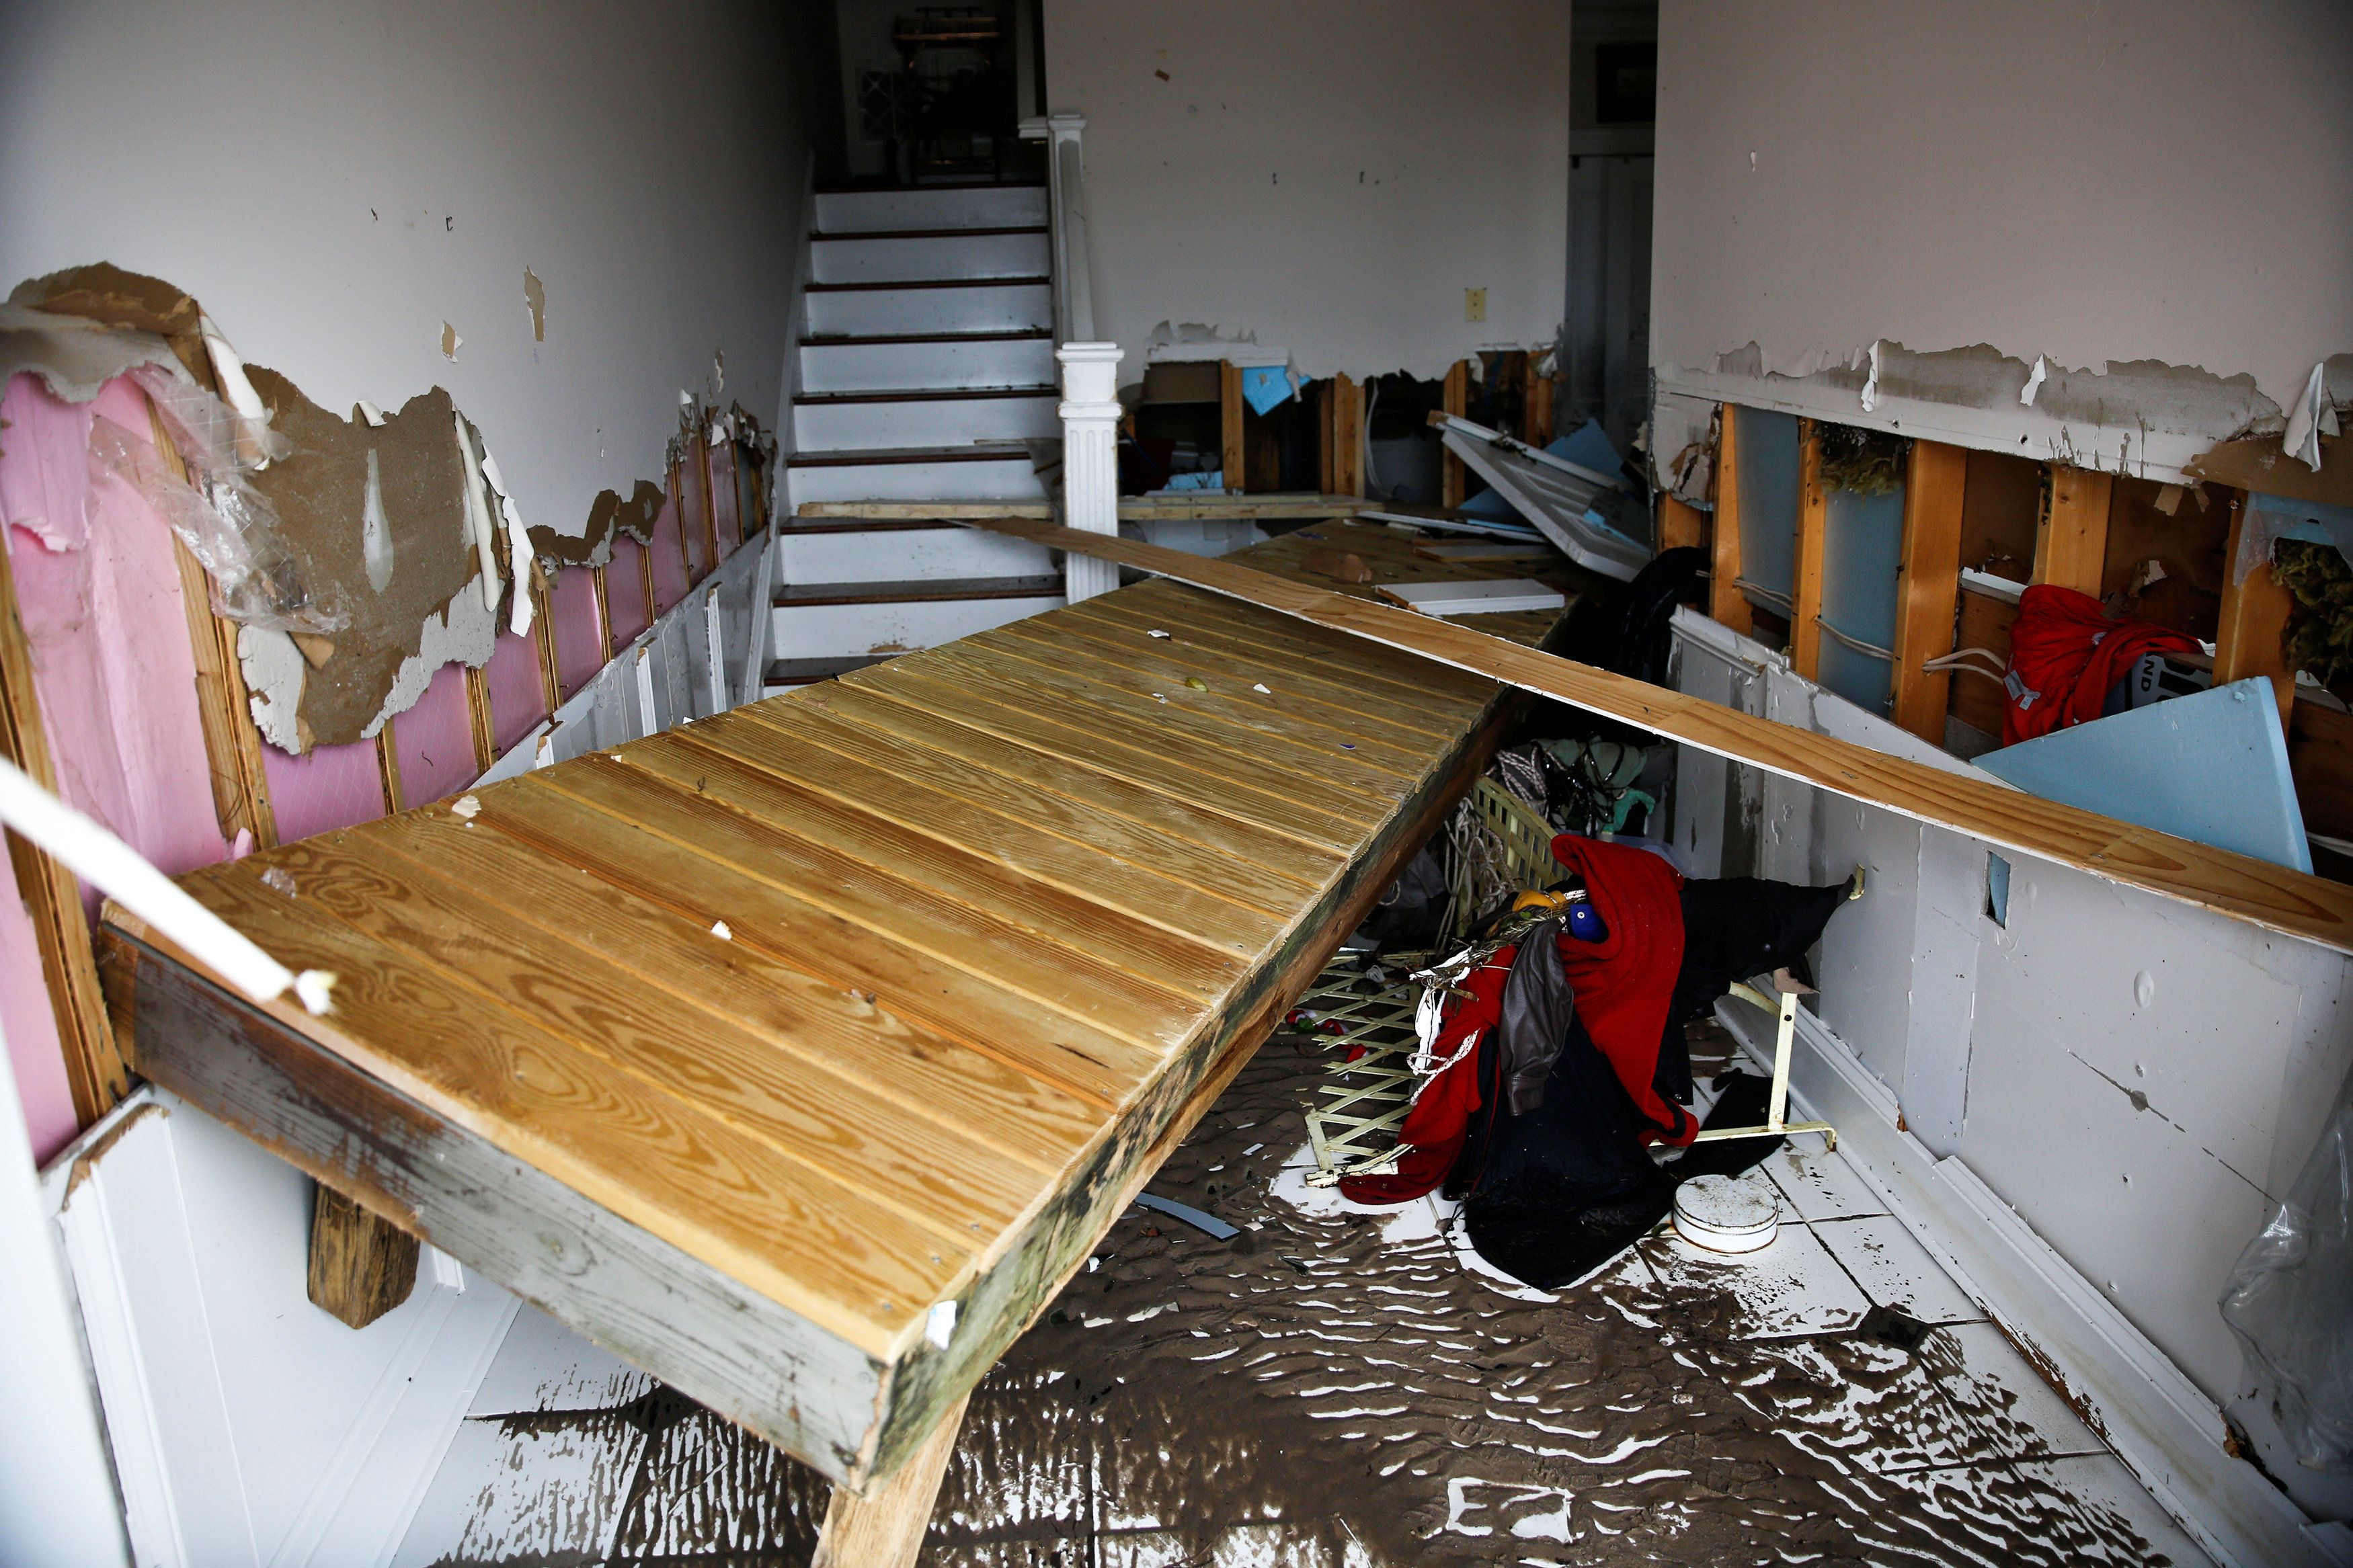 Part of a dock remains inside of a house as people clean their properties after the pass of Hurricane Florence in New Bern, N